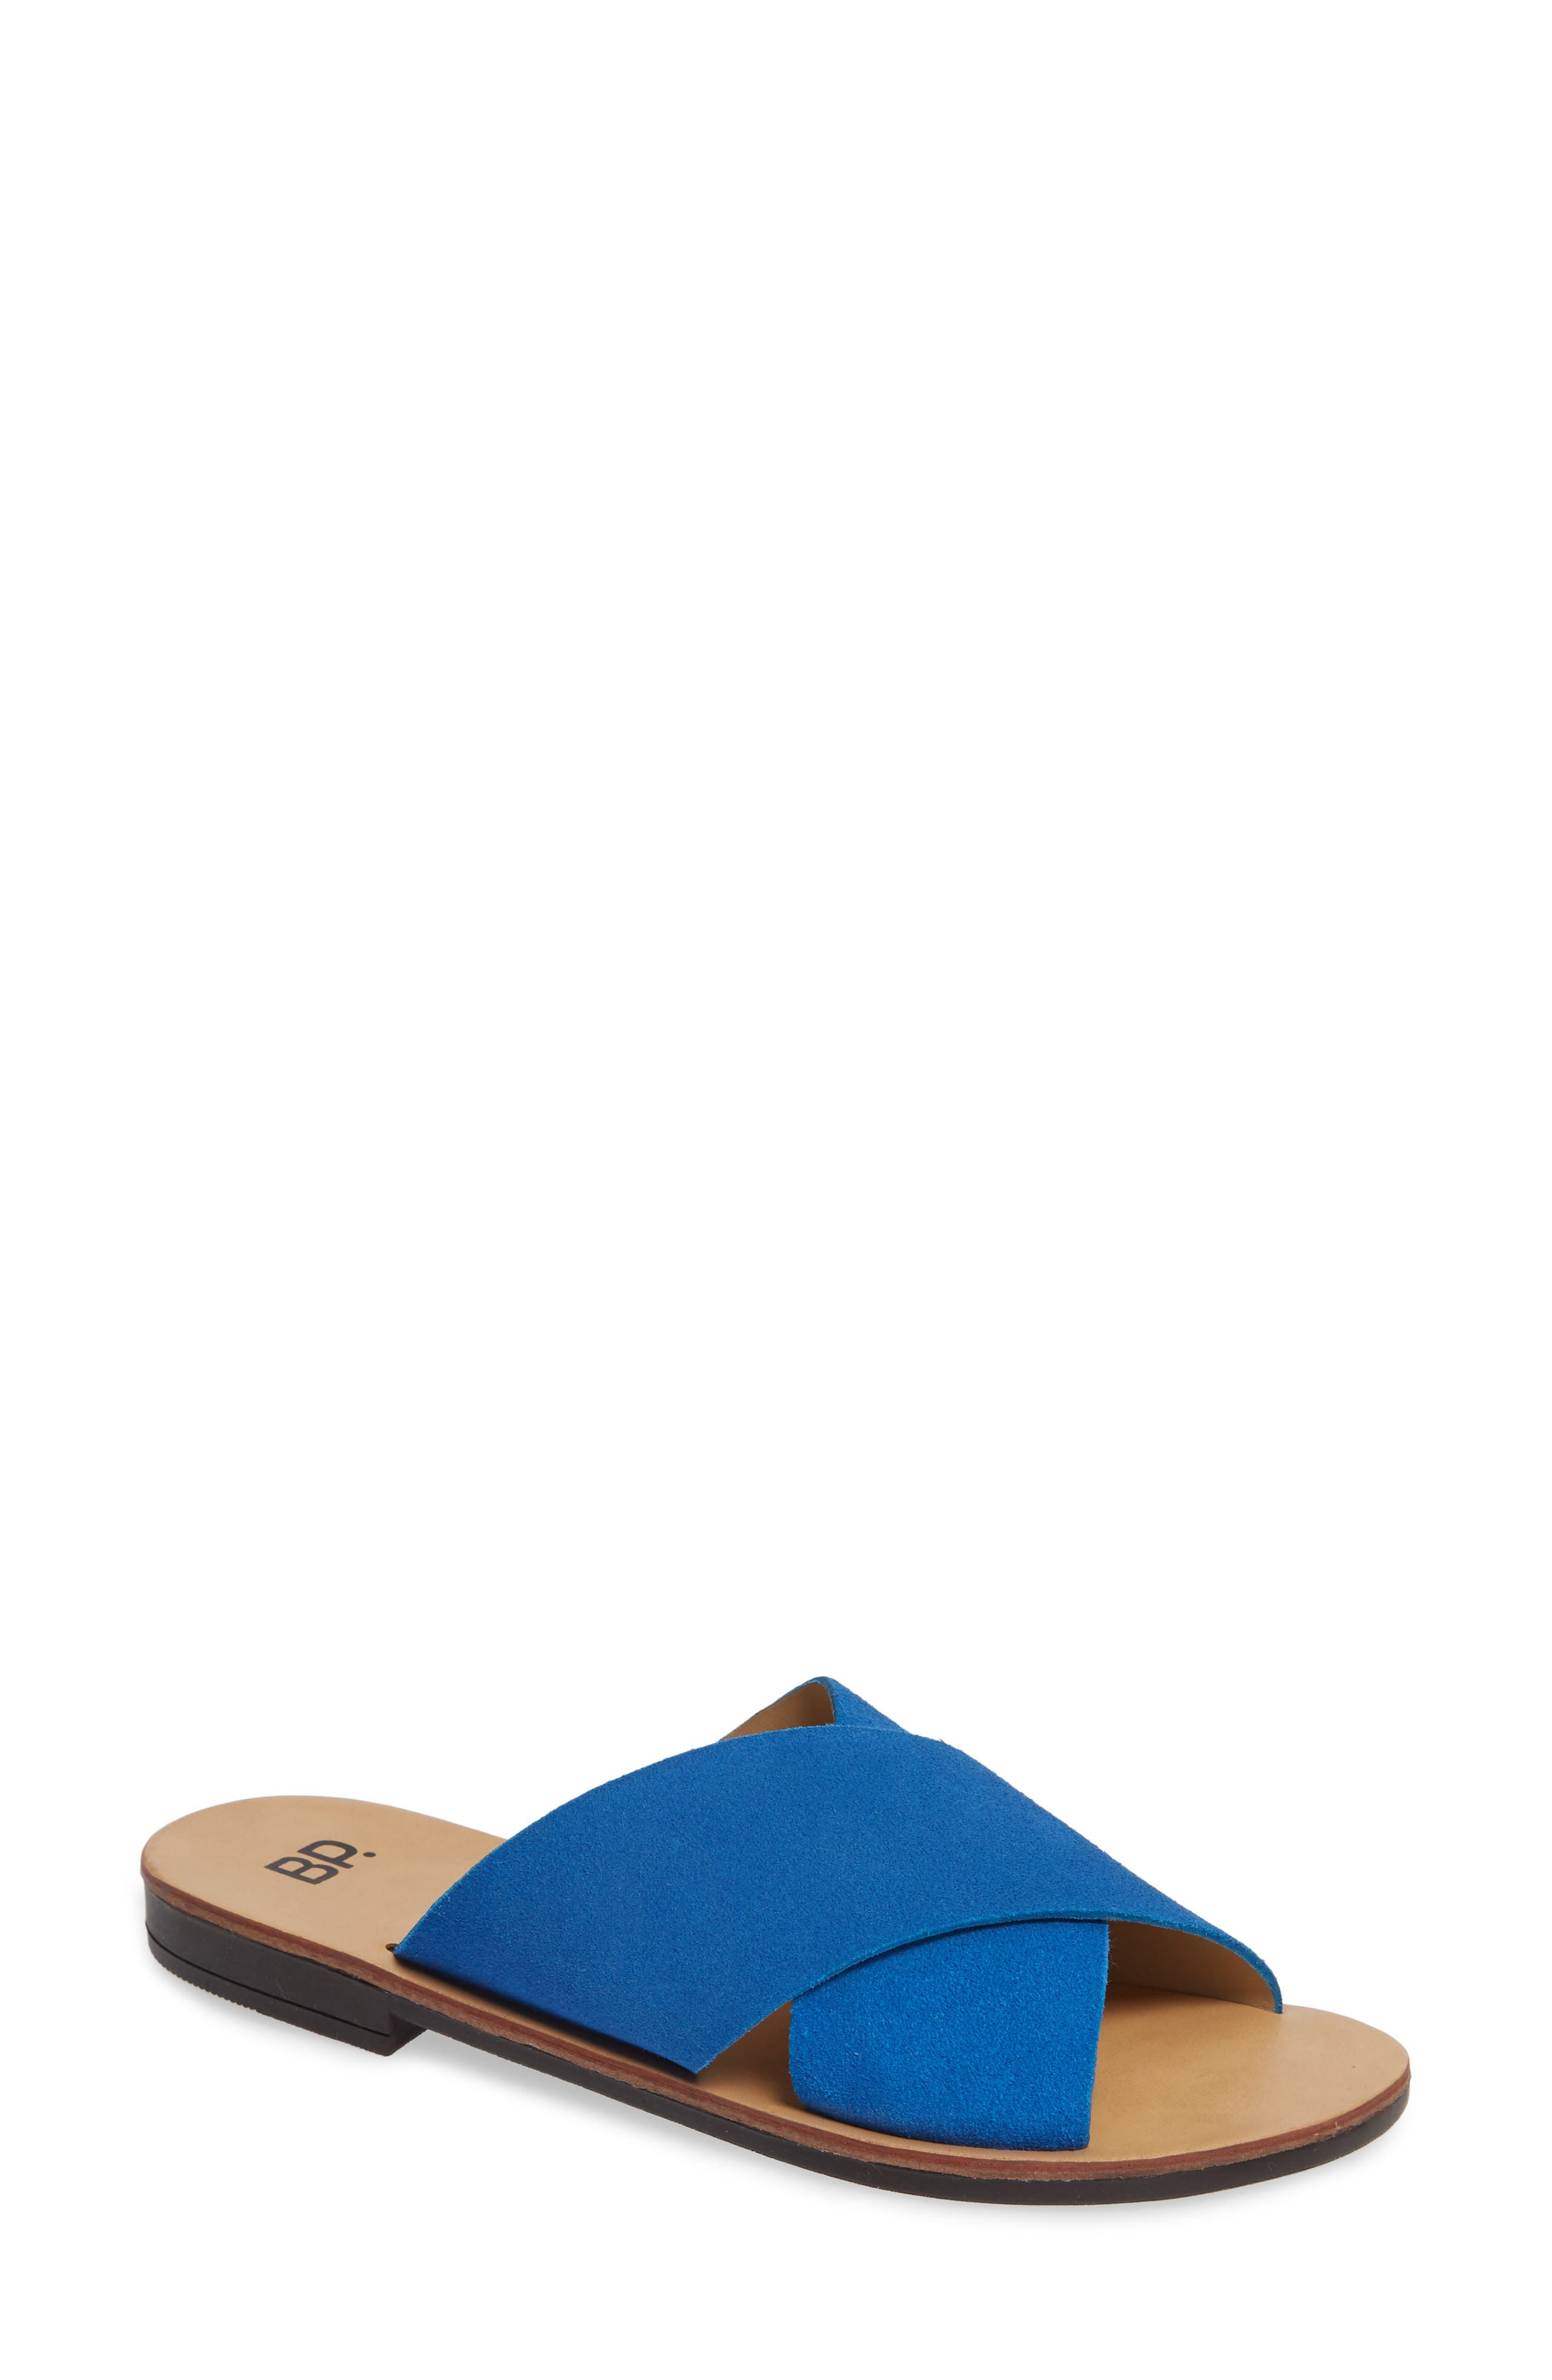 Twist Cross Strap Sandal,                             Main thumbnail 1, color,                             410